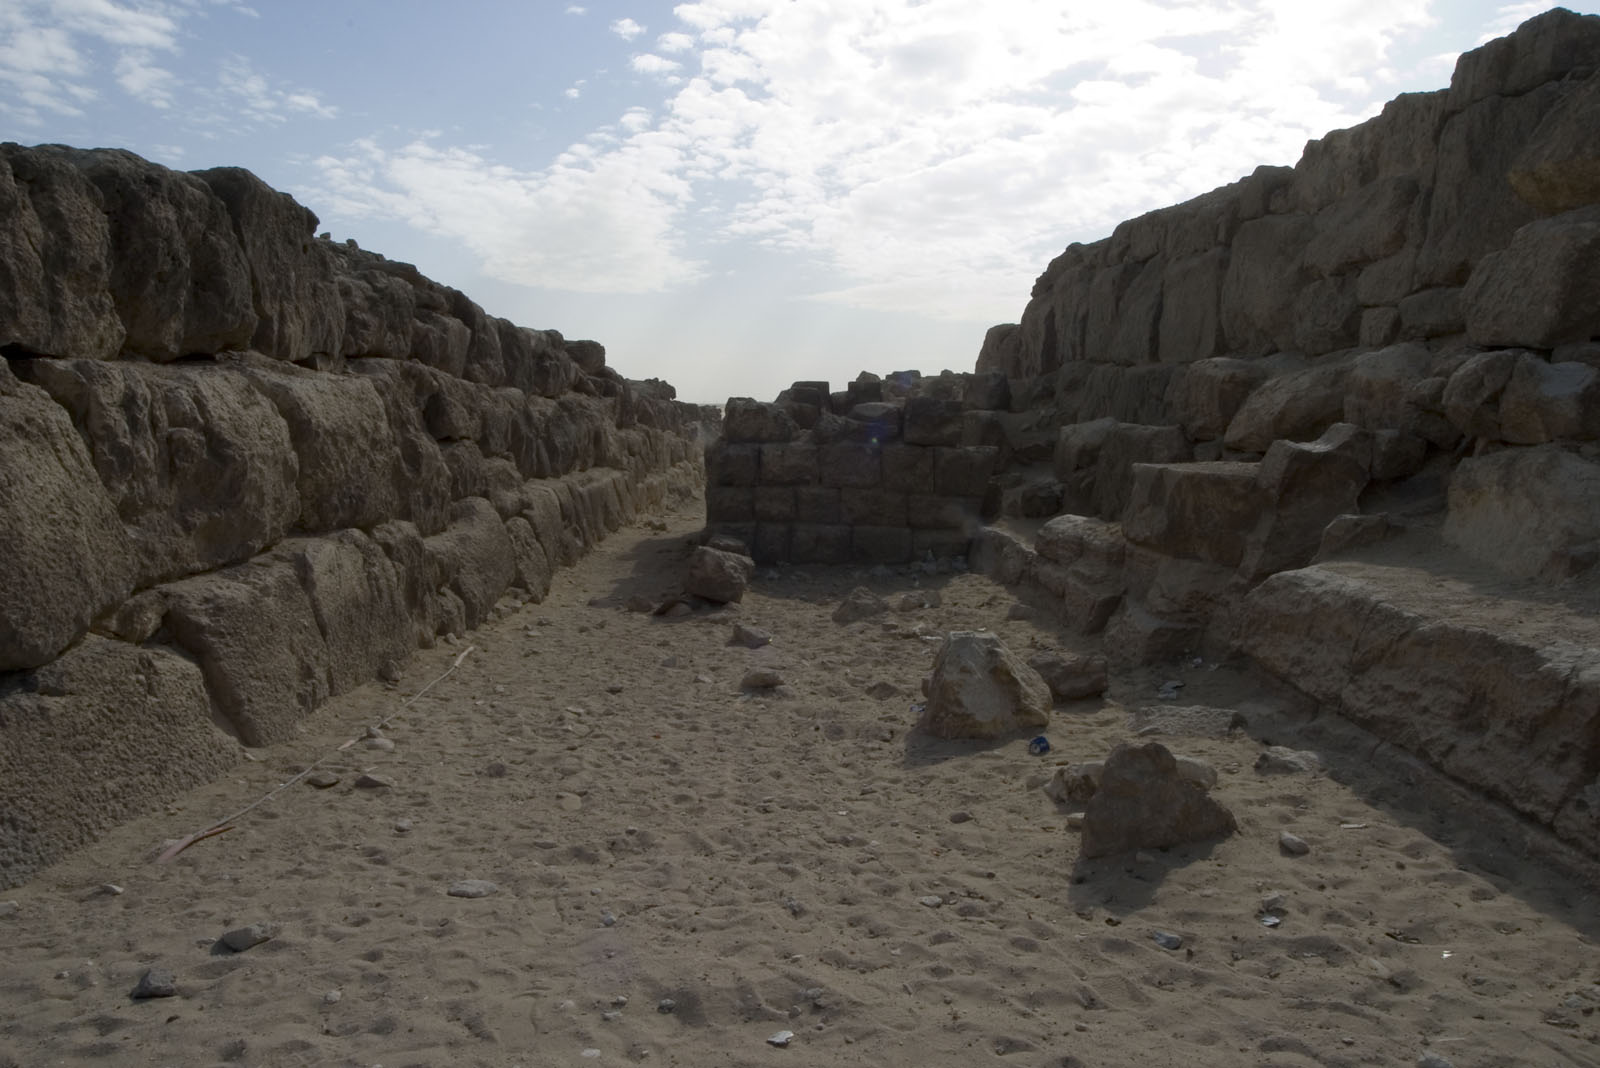 Eastern Cemetery: Site: Giza; View: G 7230-7240, G 7130-7140, G 7132